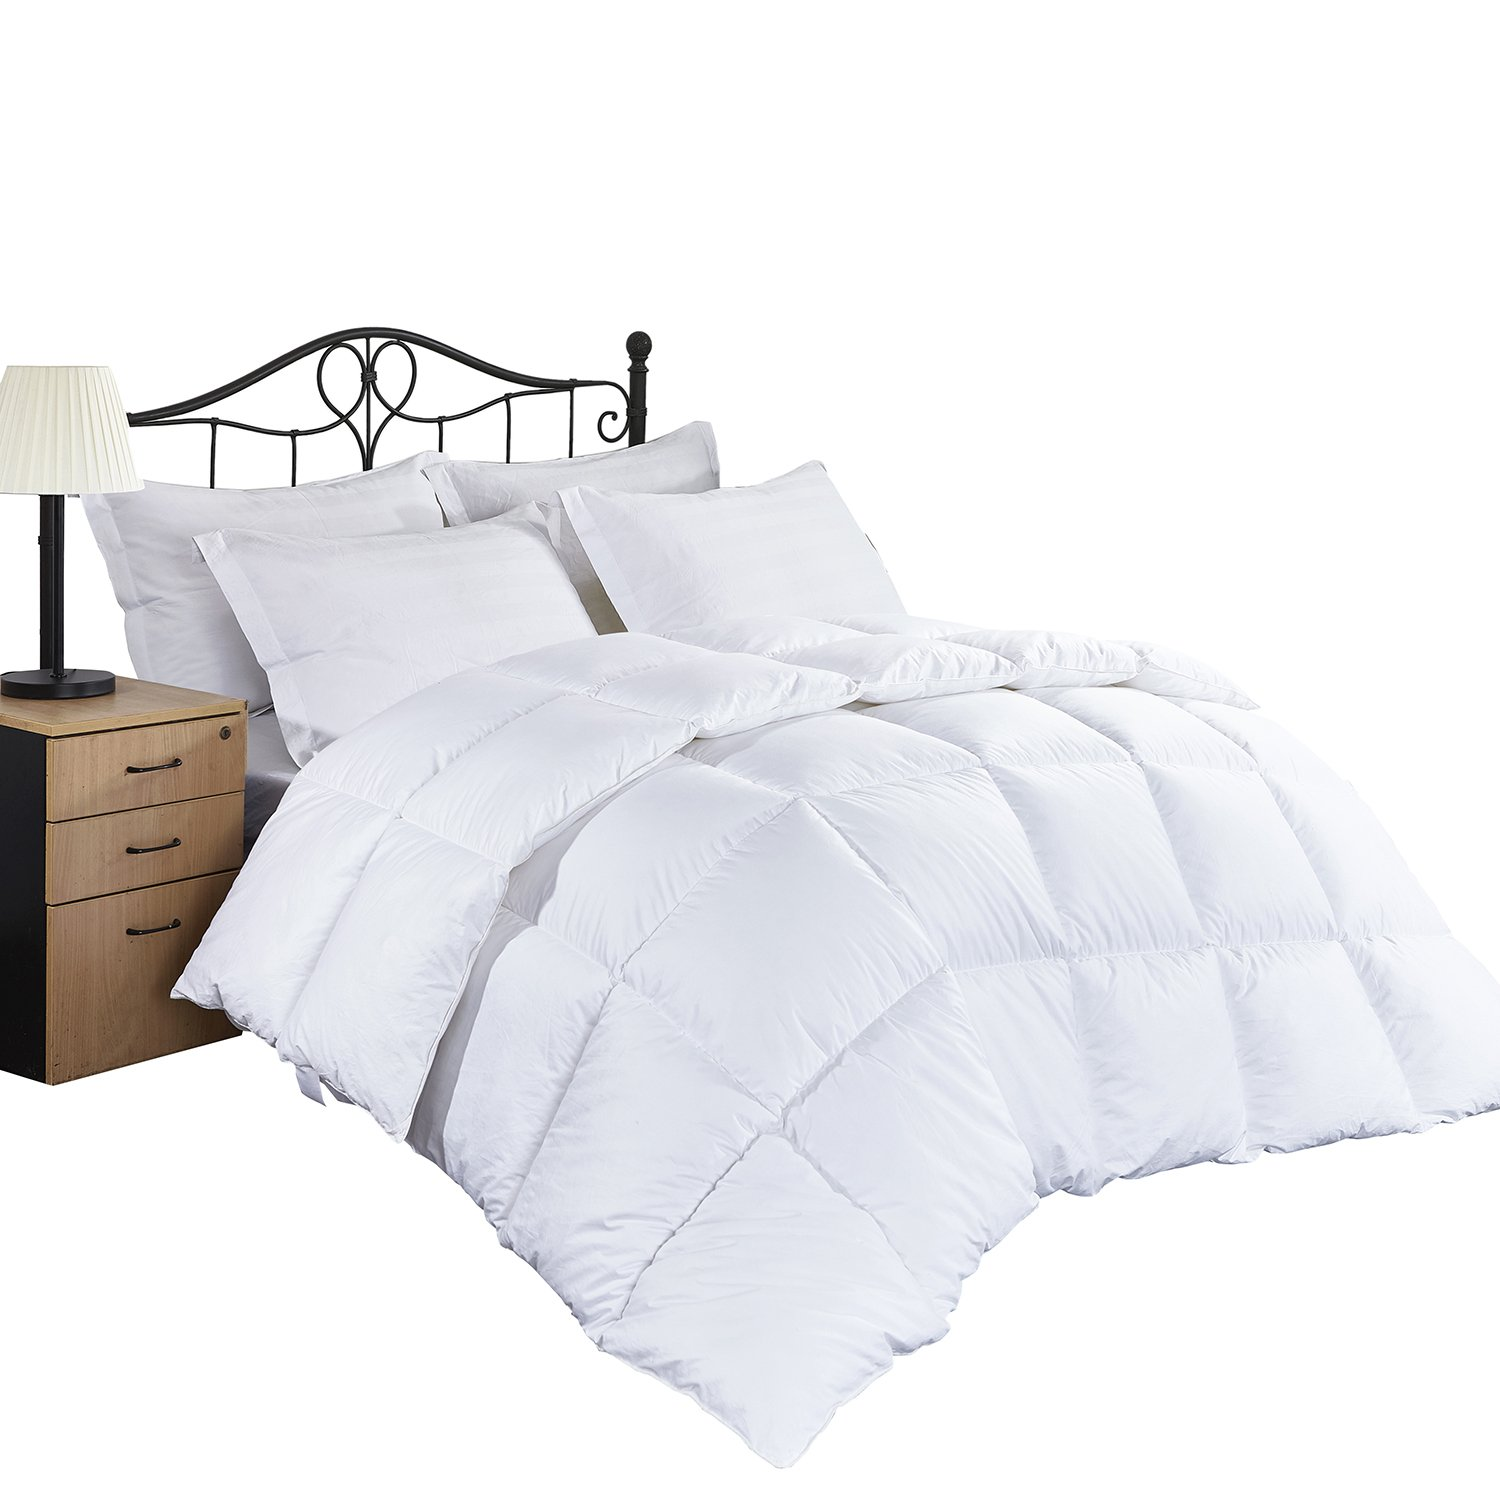 Queen Comforter Soft Down Alternative Quilted - Microfiber Fill- Reversible Cooling Duvet Insert Set- 8 Corner Duvet Tabs -Summer&All Seasons - Hypoallergenic -Fluffy Warm White 88 by 88 Inches